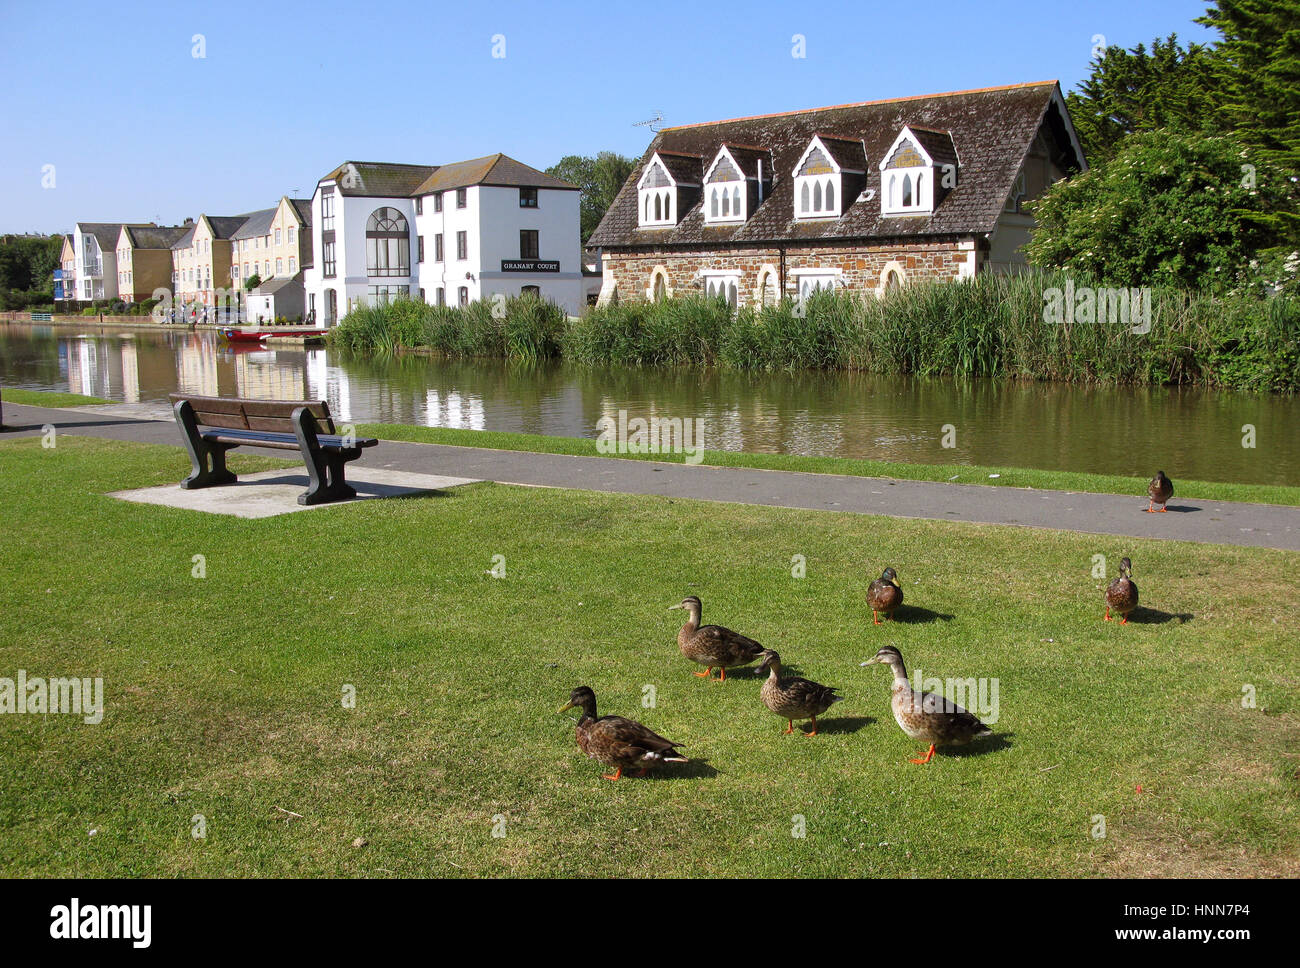 BUDE Cornwall 2013 Housing at one of the city s canals - Stock Image